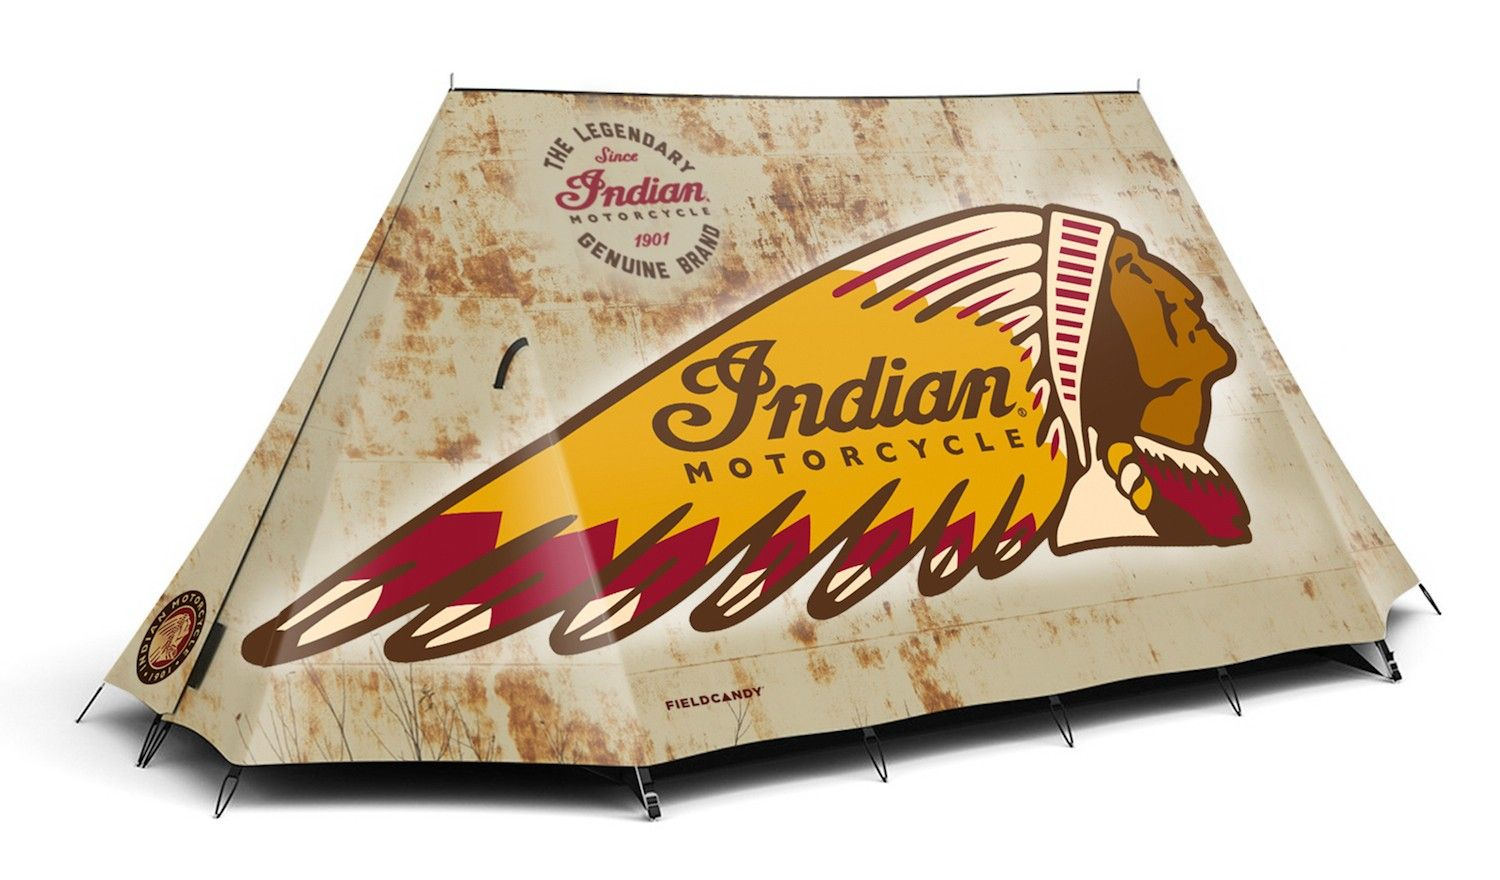 Indian Motorcycle Tent - 2 Man C&ing Tent in collaboration with Indian Motorcycle. High Specification Waterproof A-Frame Tent for 4 Season Use.  sc 1 st  Pinterest & Indian Motorcycle Camping Tent | FieldCandy | motorcycle camping ...